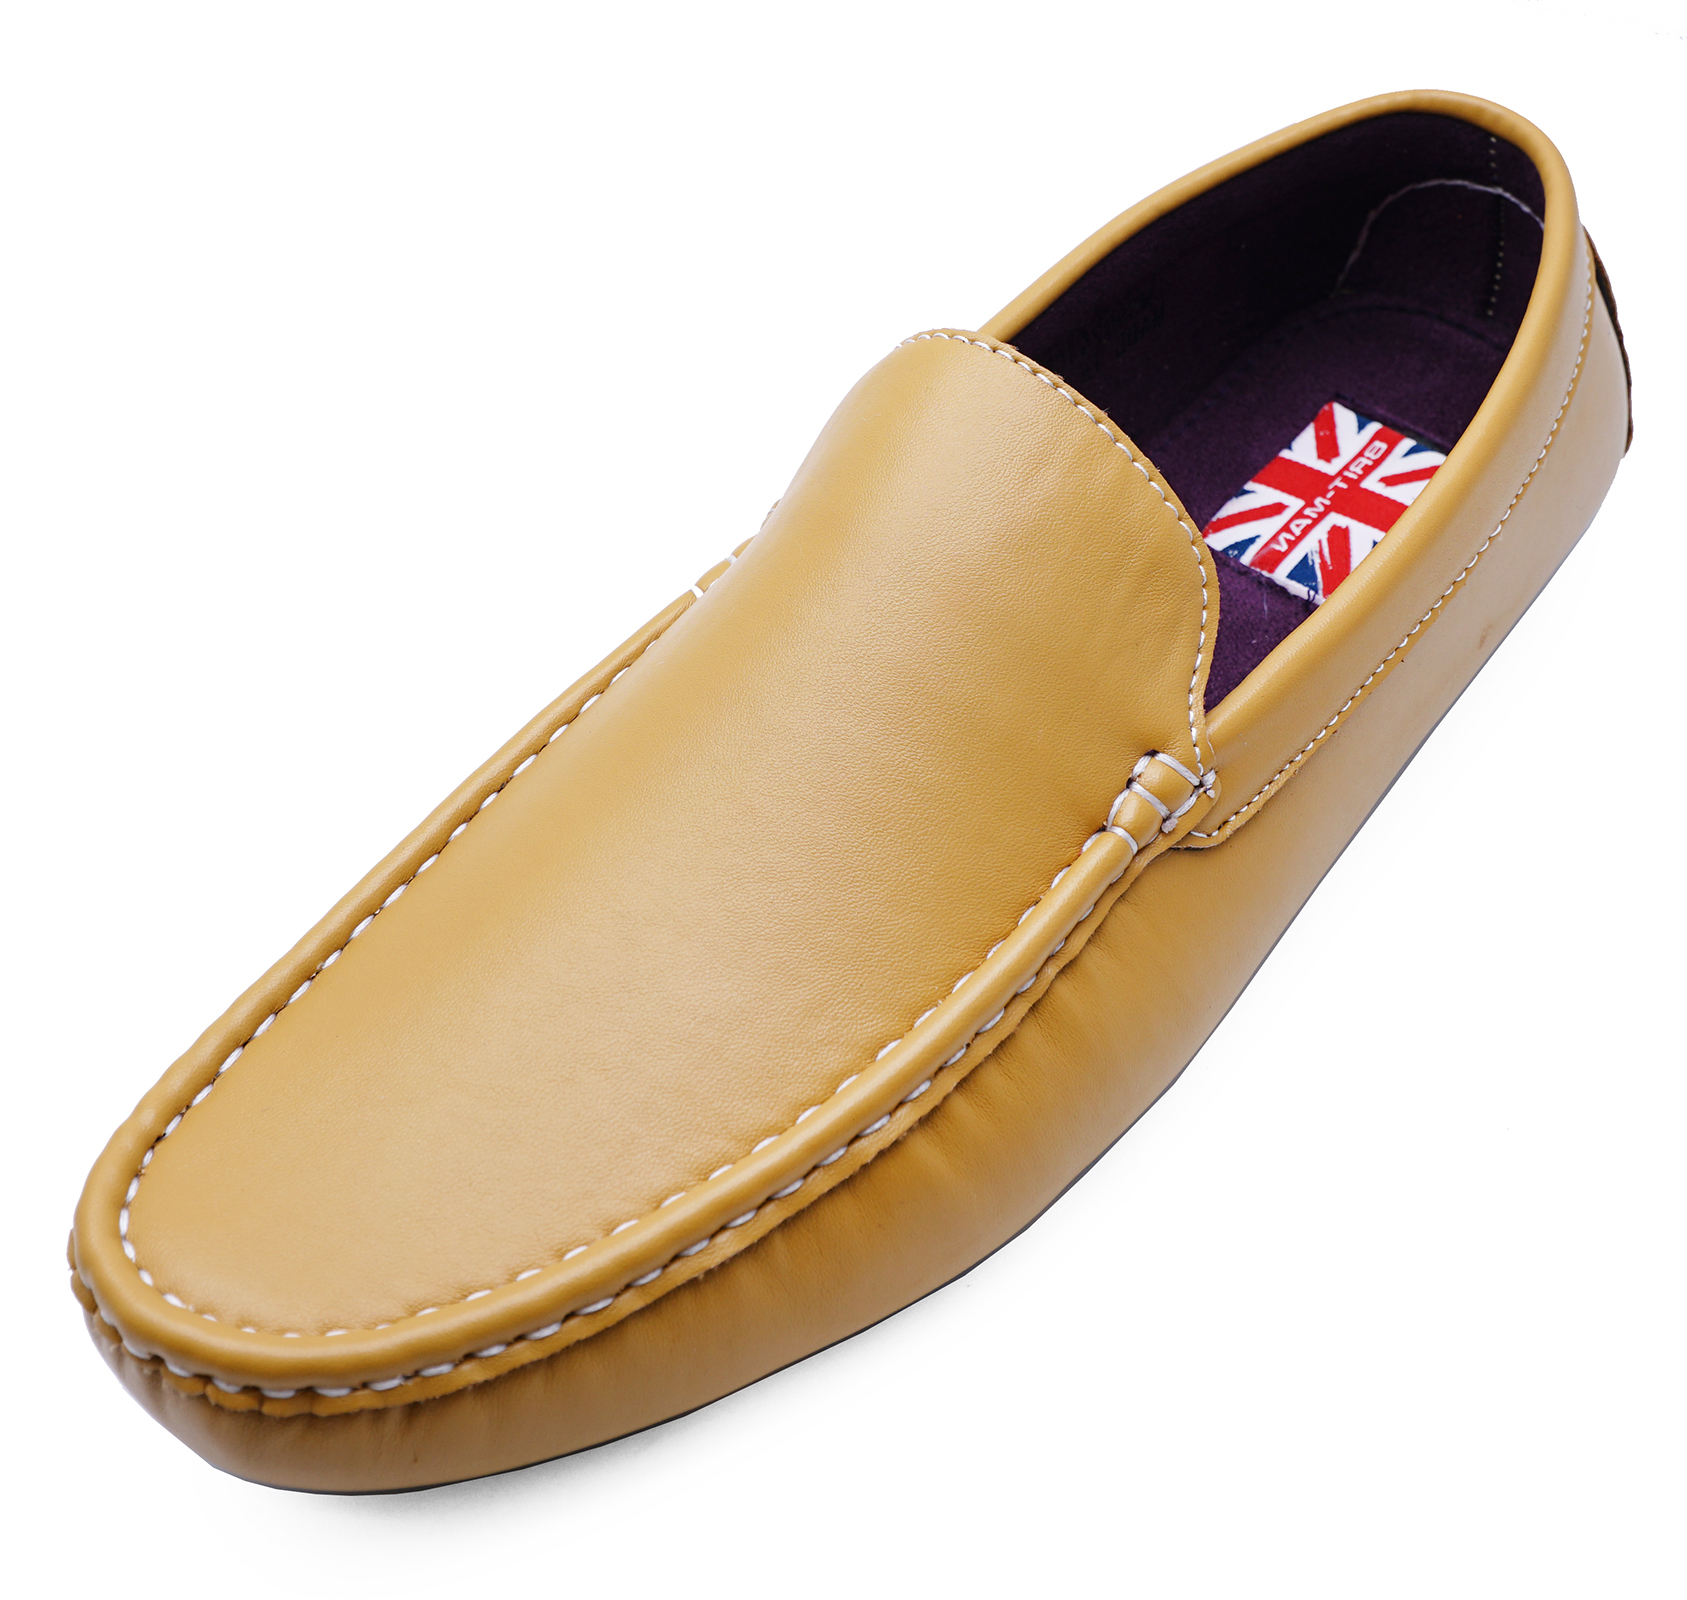 8c7b92aad63c08 Sentinel MENS FLAT YELLOW SLIP-ON SMART MOCCASIN CASUAL LOAFERS DRIVING  COMFY SHOES 6-11